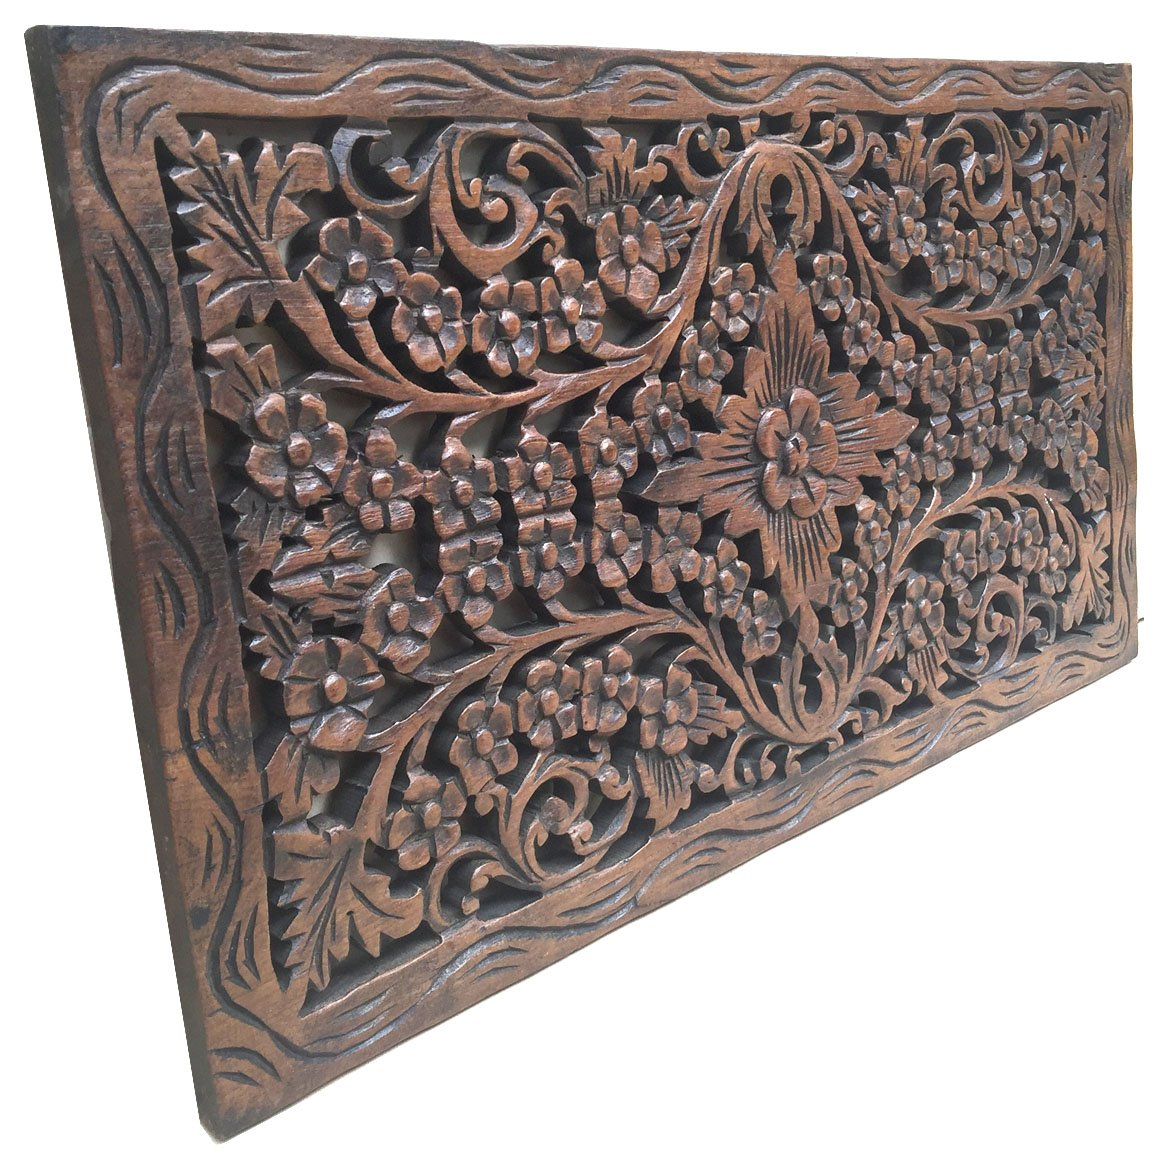 Asiana Home Decor Wood Carved Panel. Decorative Thai Wall Relief Panel Sculpture.Teak Wood Wall Hanging in Dark Brown Finish Size 24''x13.5''x0.5'' by Asiana Home Decor